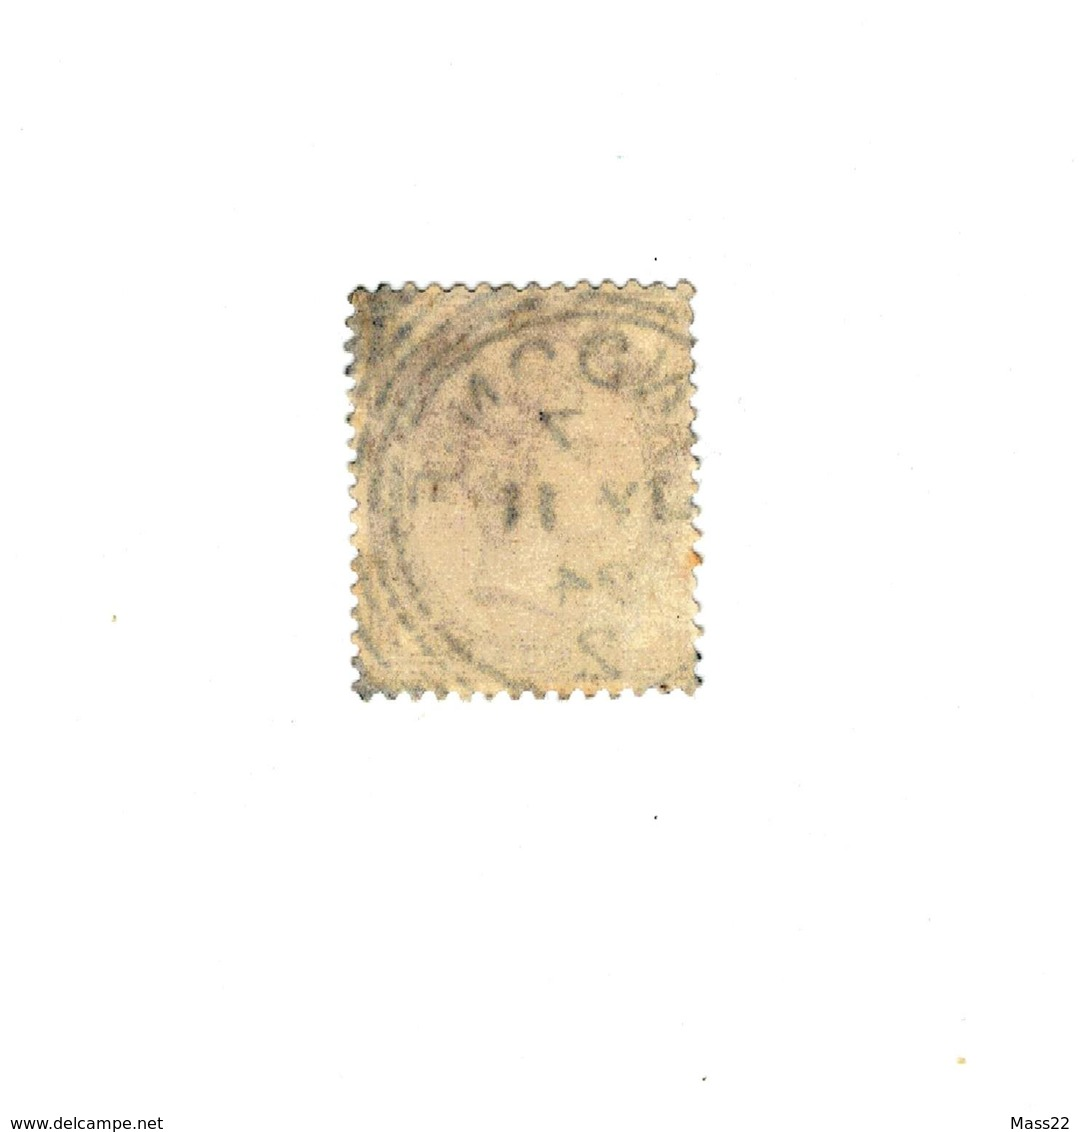 One Penny Victoria Lilac - Postage And Inland Revenue, Without WM - 1840-1901 (Victoria)